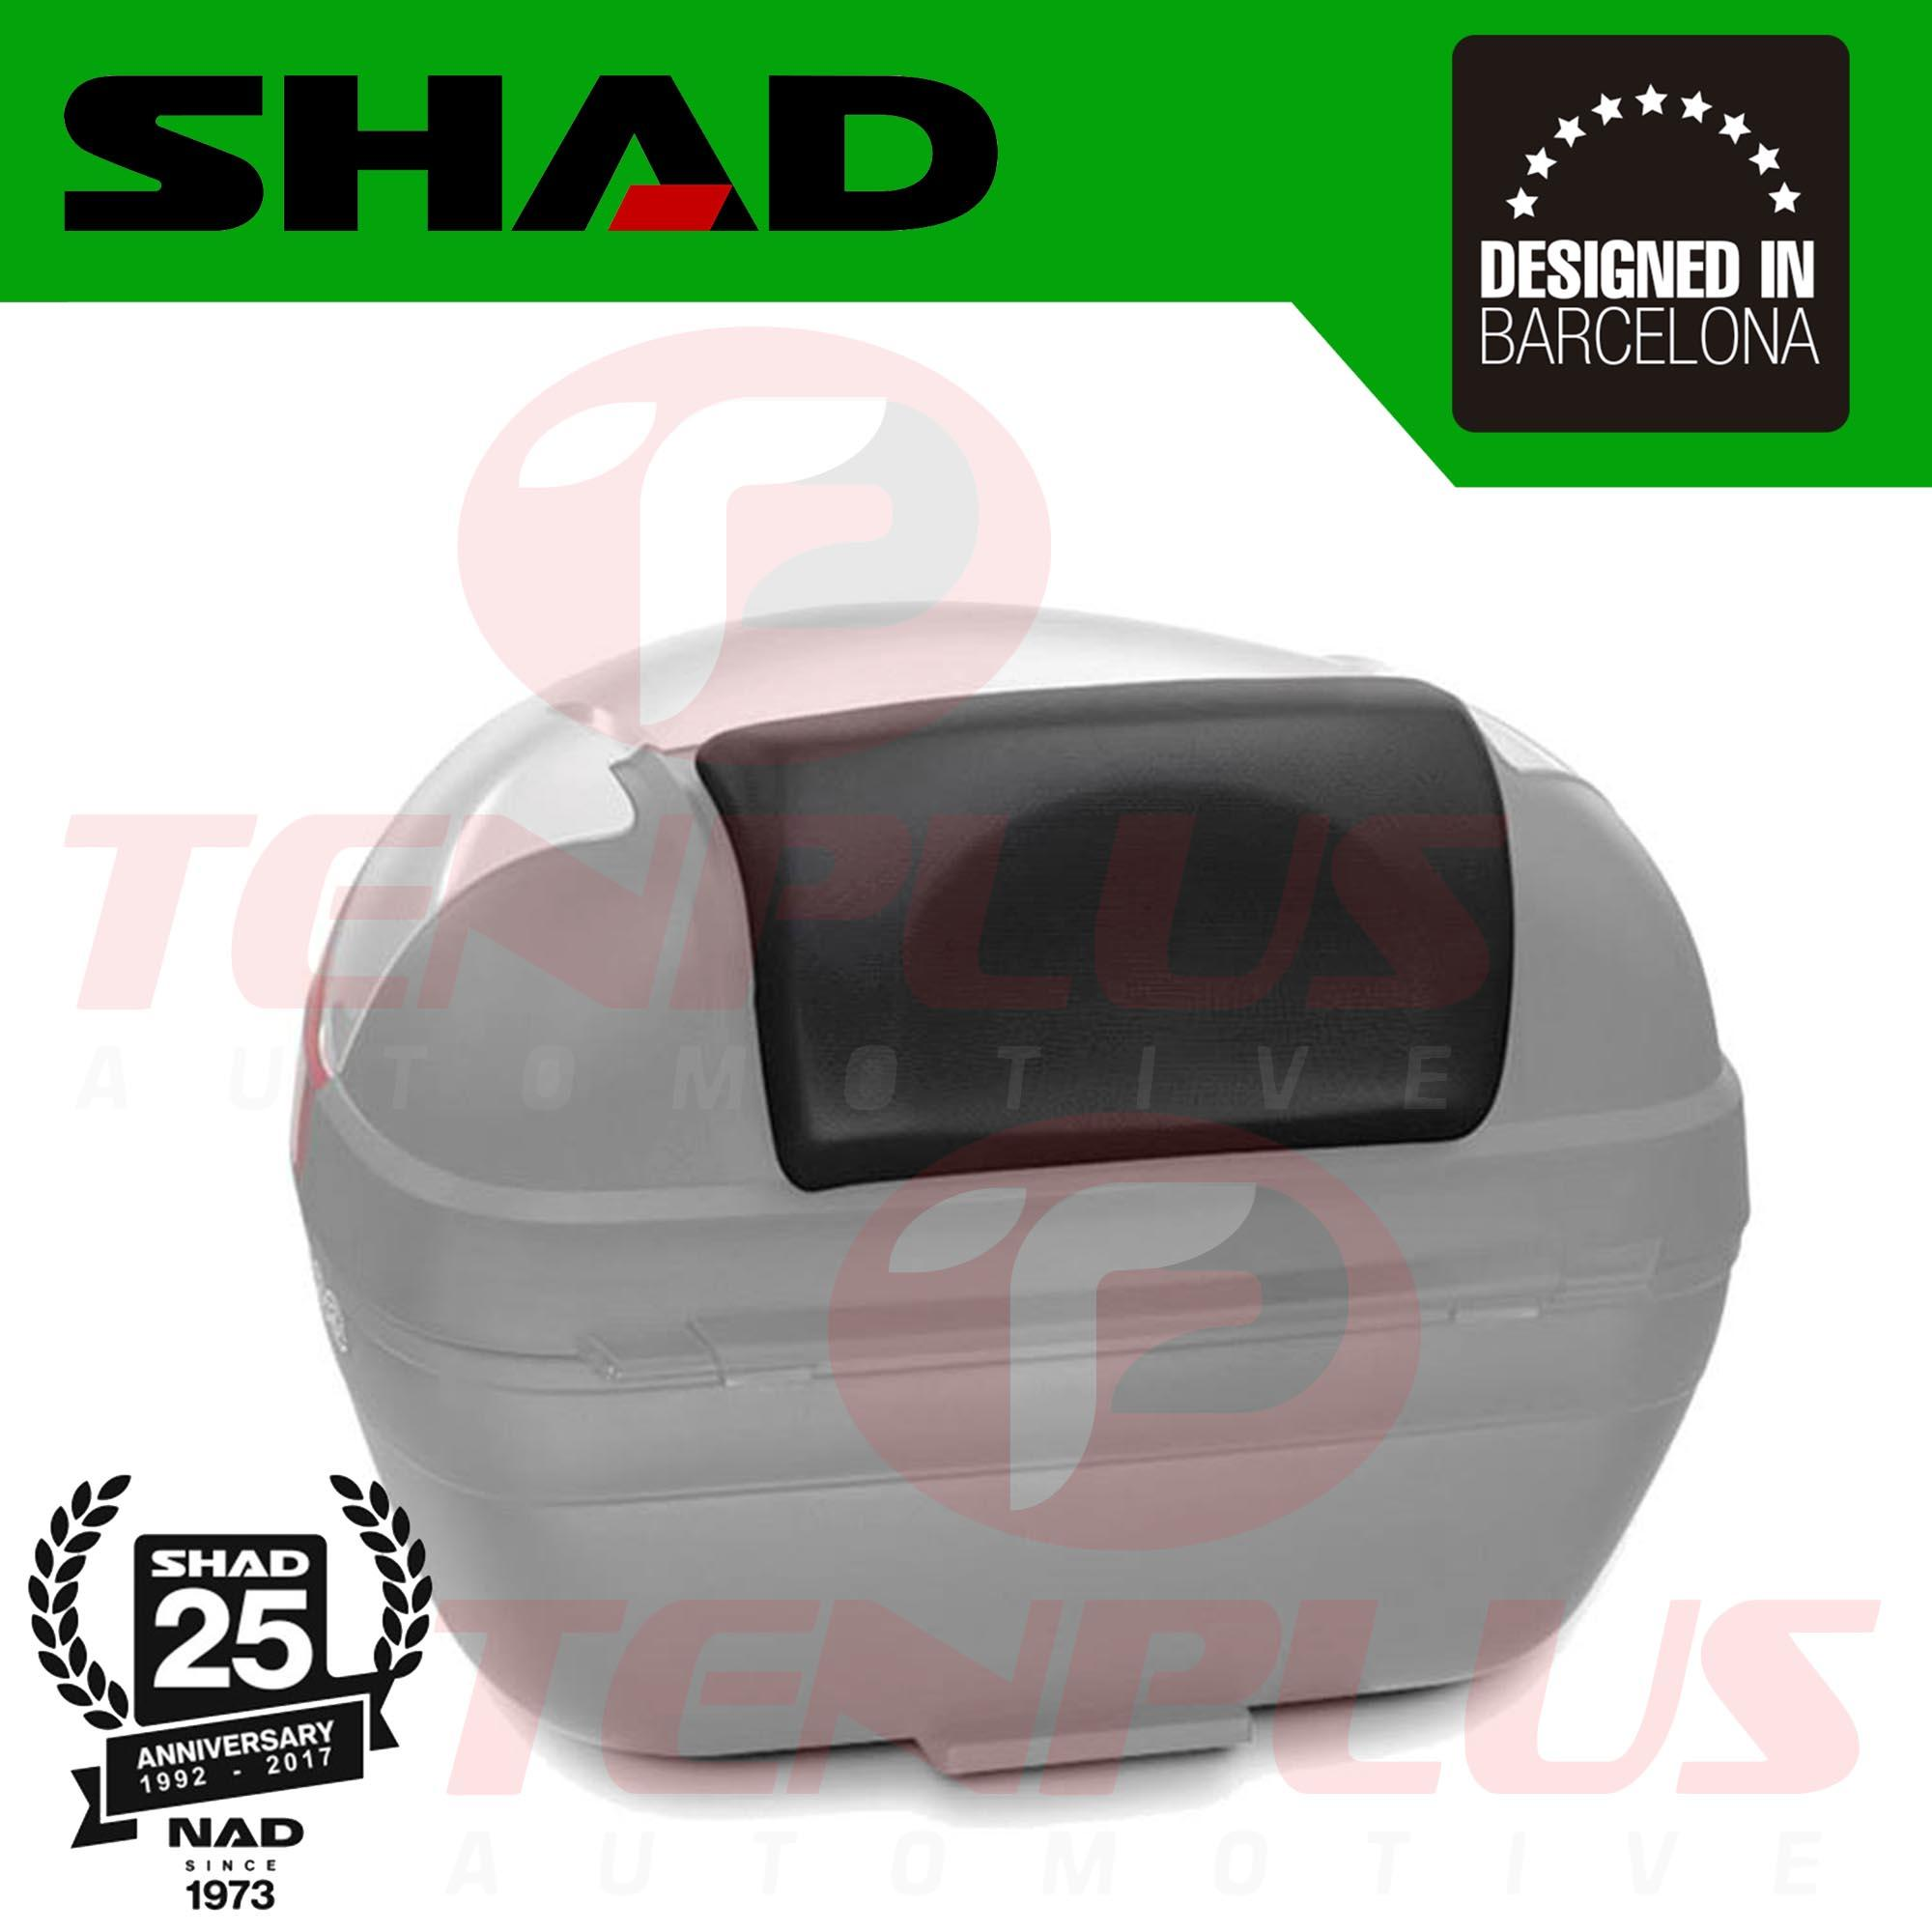 Shad Back Rest For Sh29, Sh33 And Sh34 By Tenplus Auto Supply.